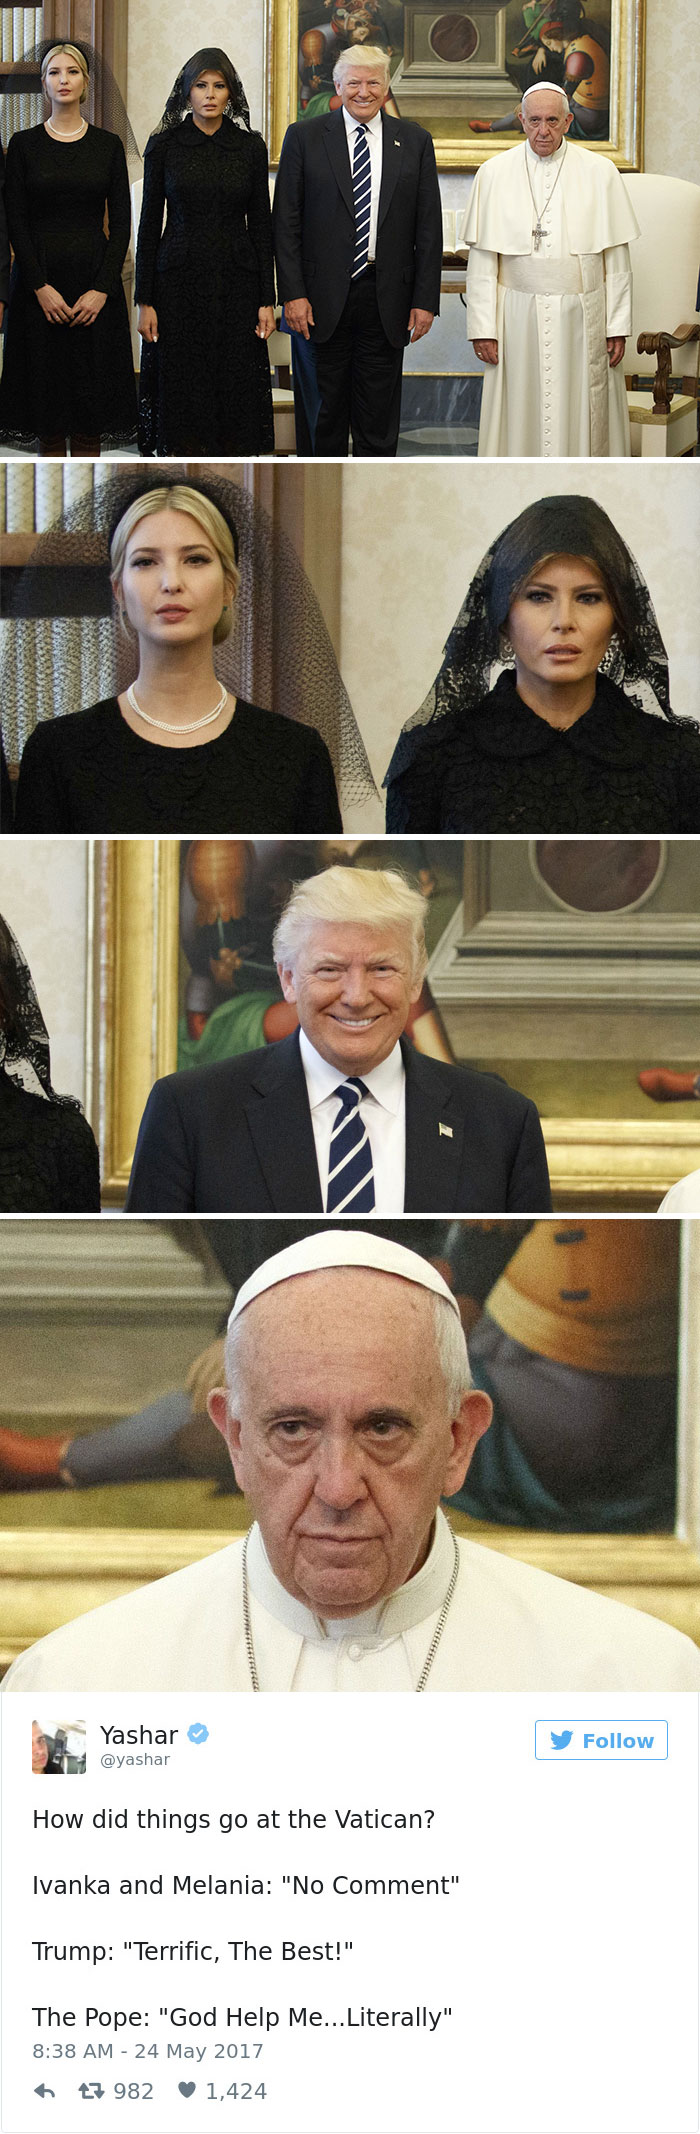 donald trump pope francis funny memes 11 10 most creative reactions to sad pope meeting the trumps part 2,Pope Francis Trump Meme